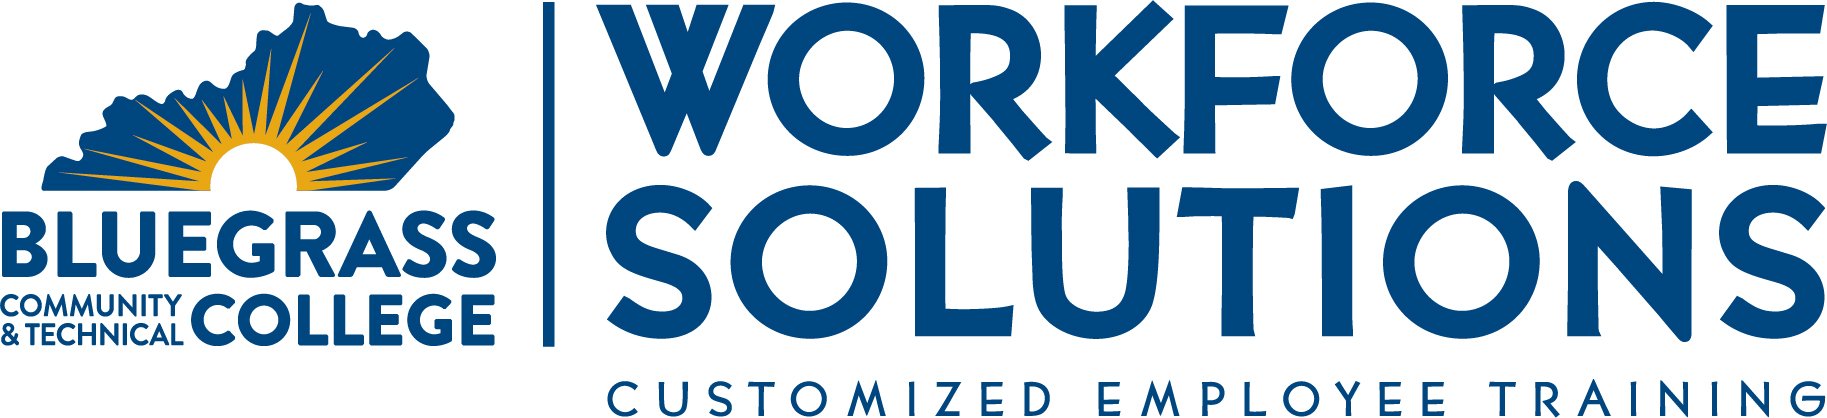 bctc workforce solutions horizontal logo